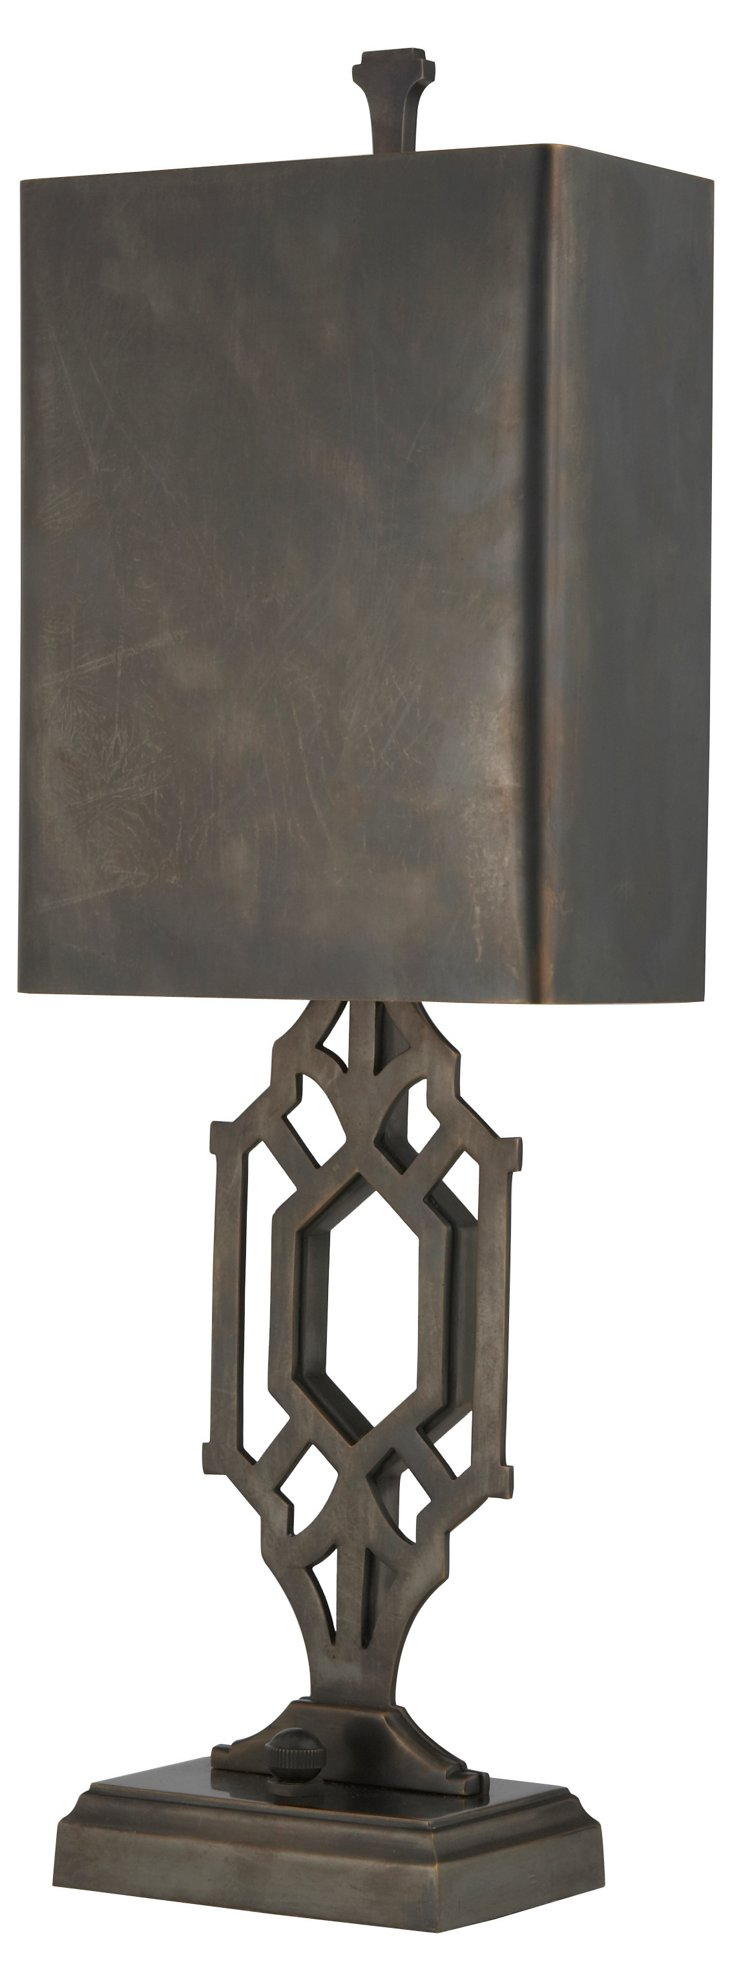 Fretwork Library Table Lamp, Bronze